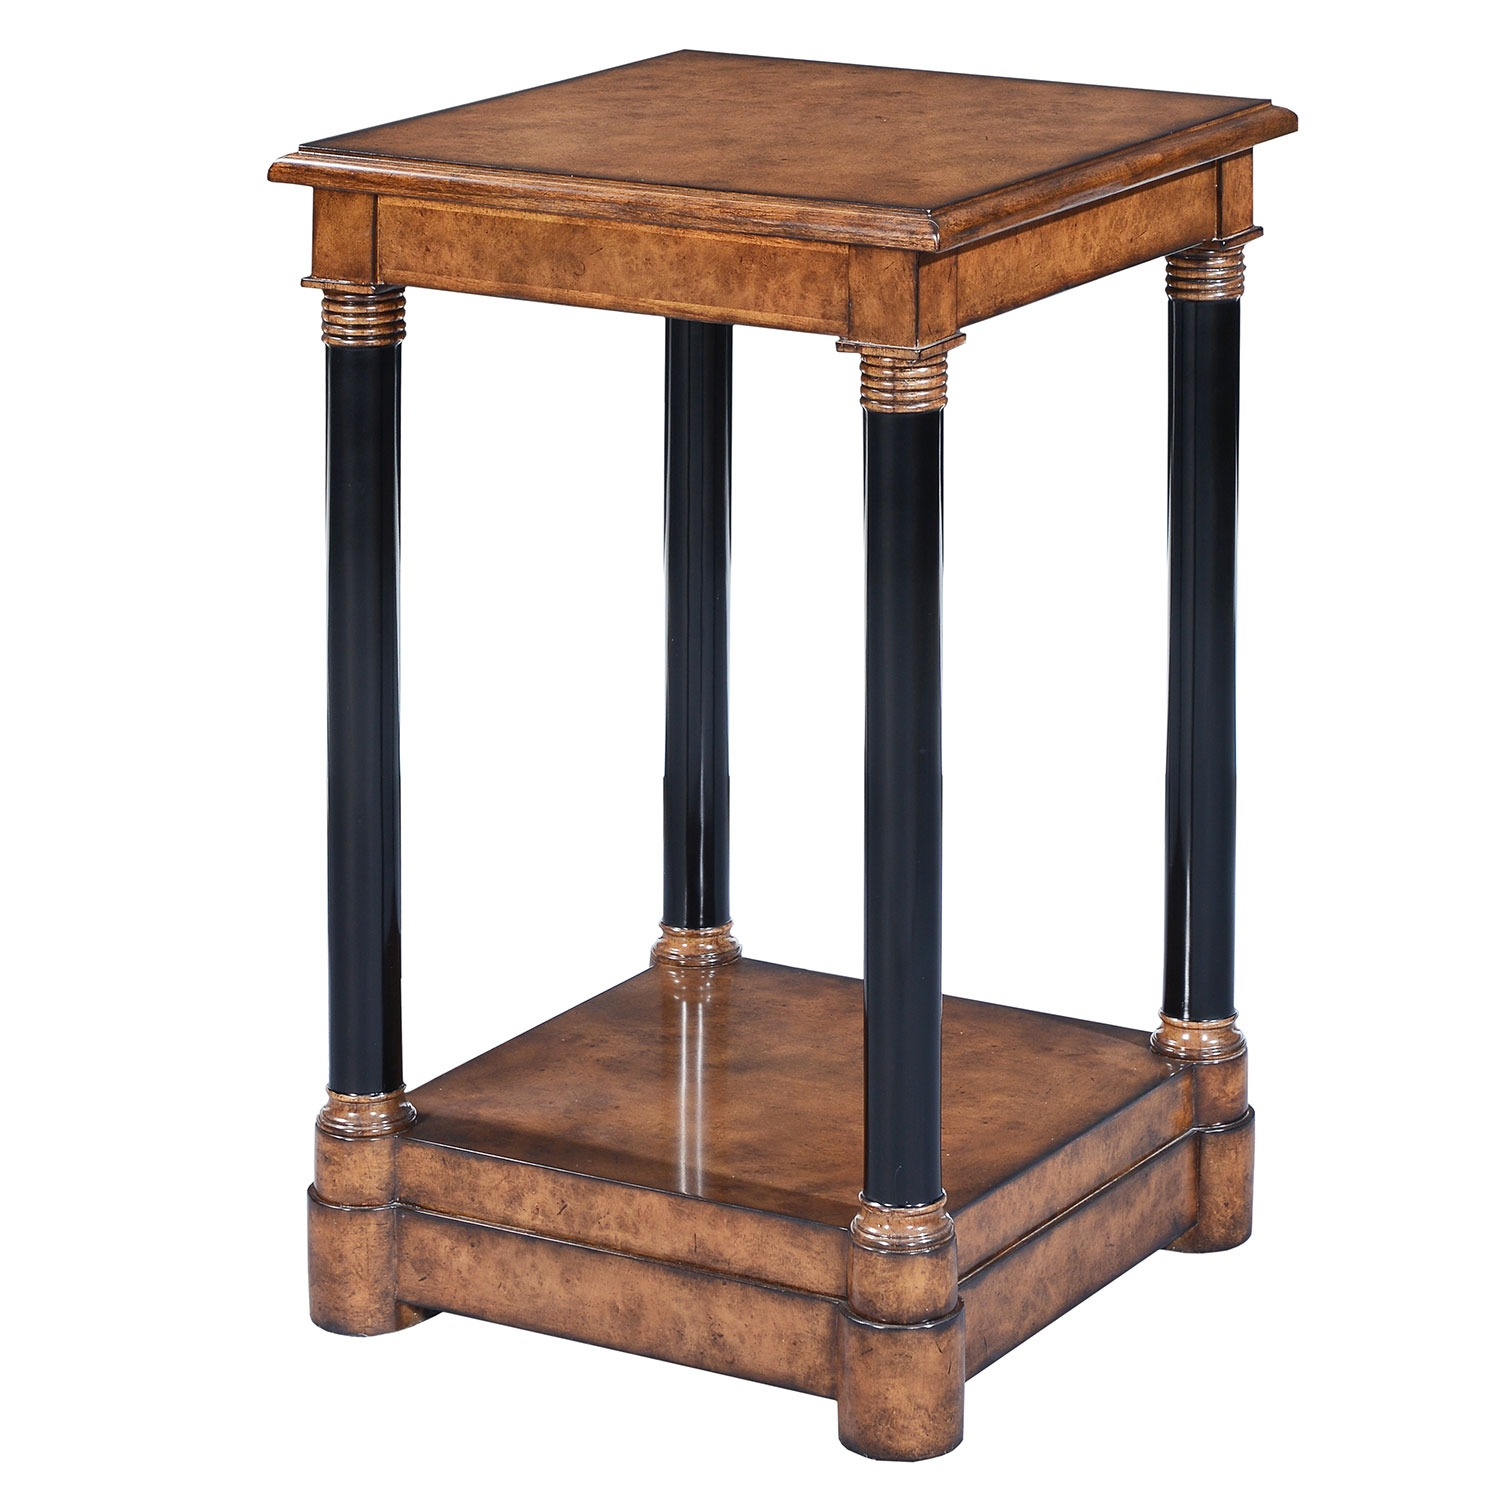 Empire style tall side table - Burr oak with ebonised legs